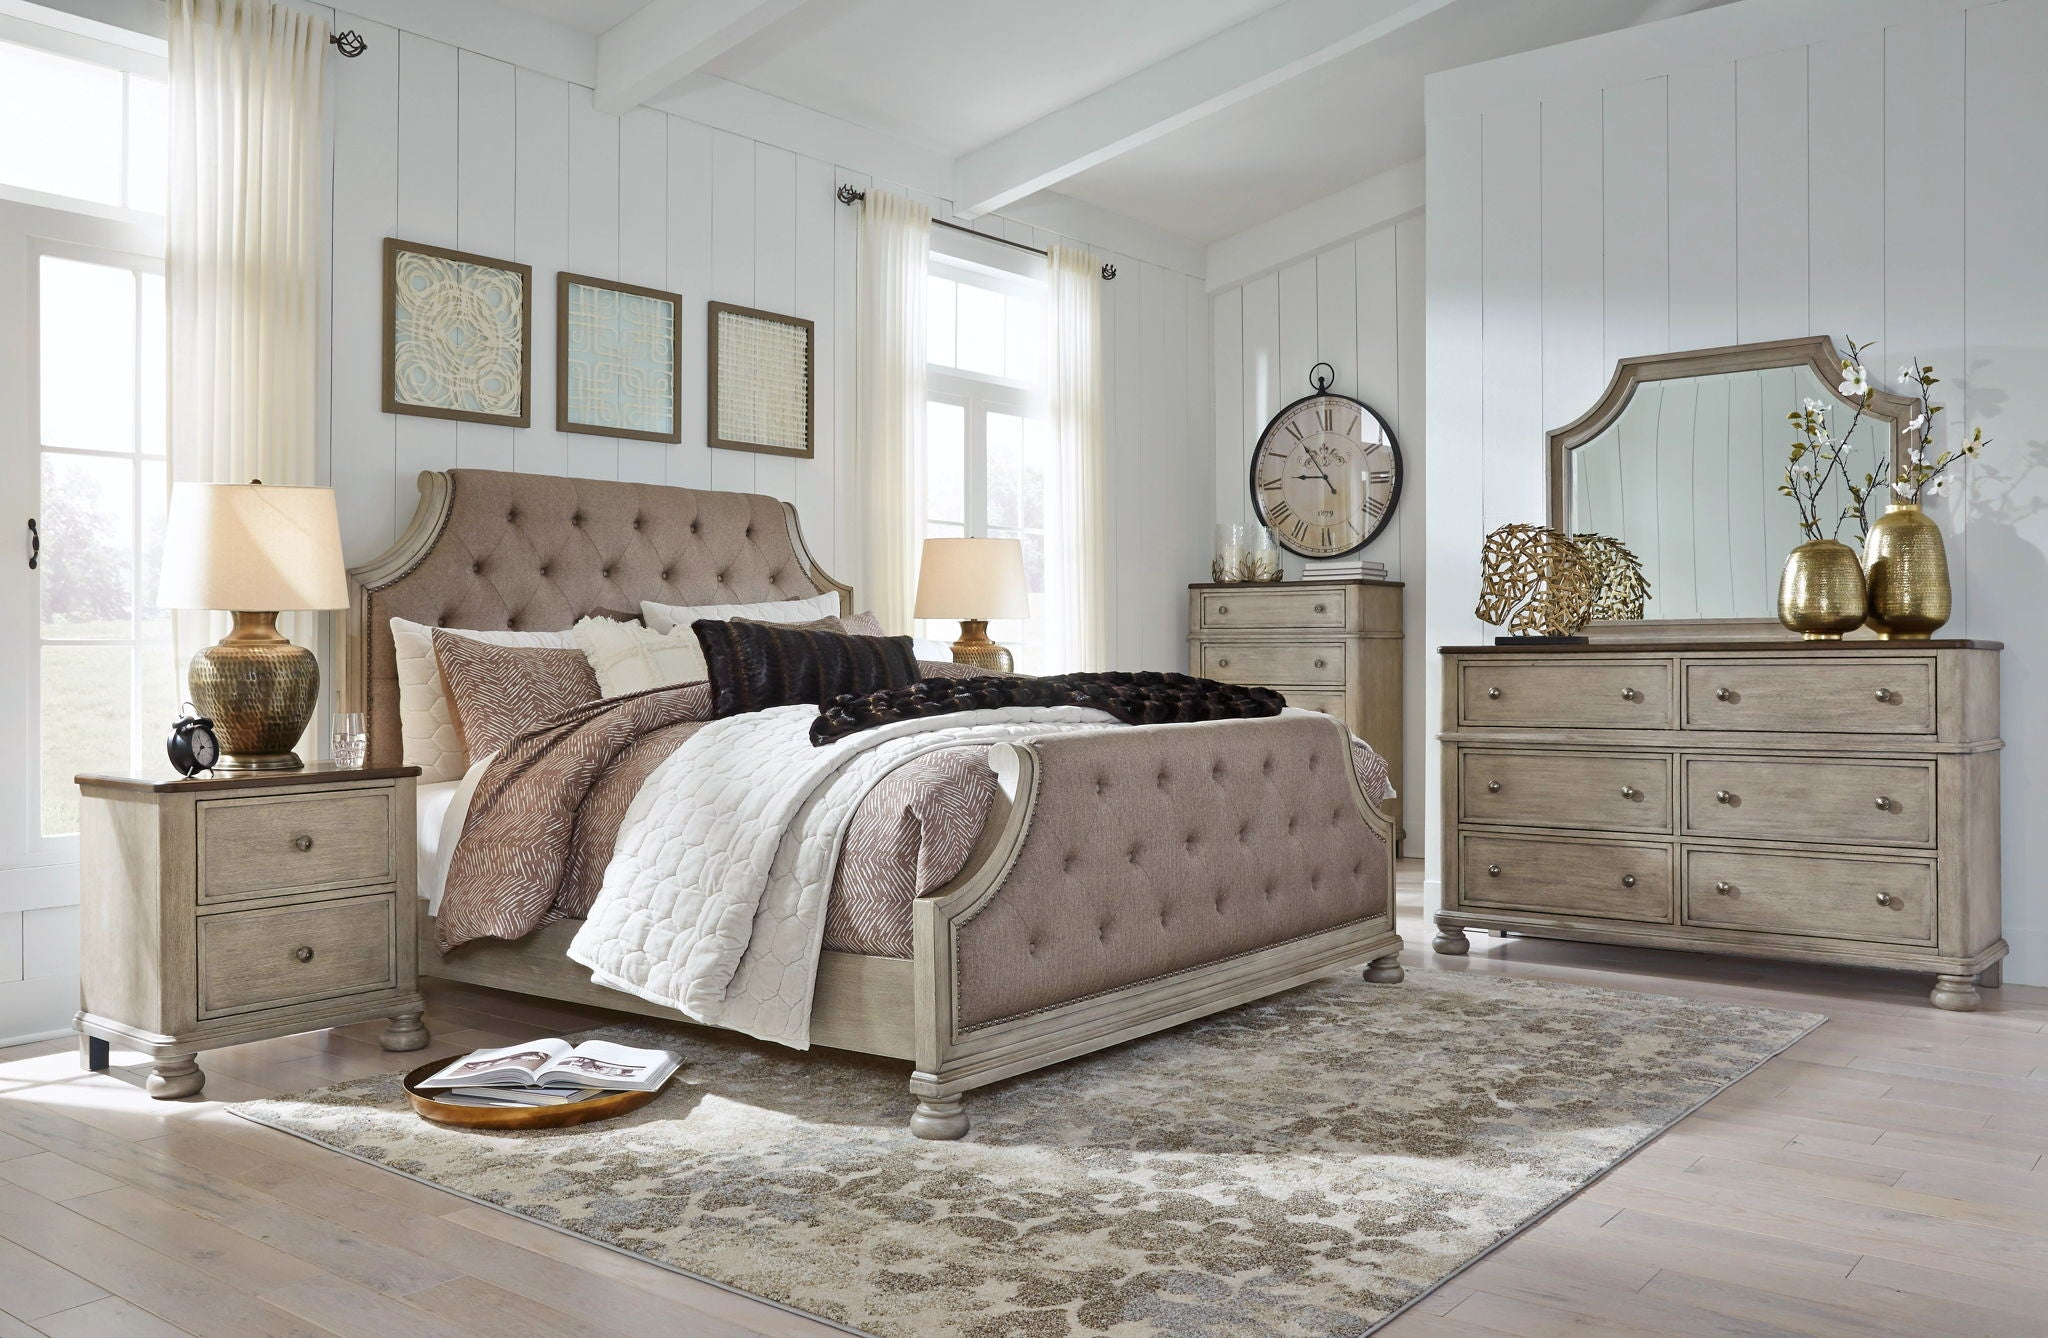 Falkhurst Upholstered Panel Bed